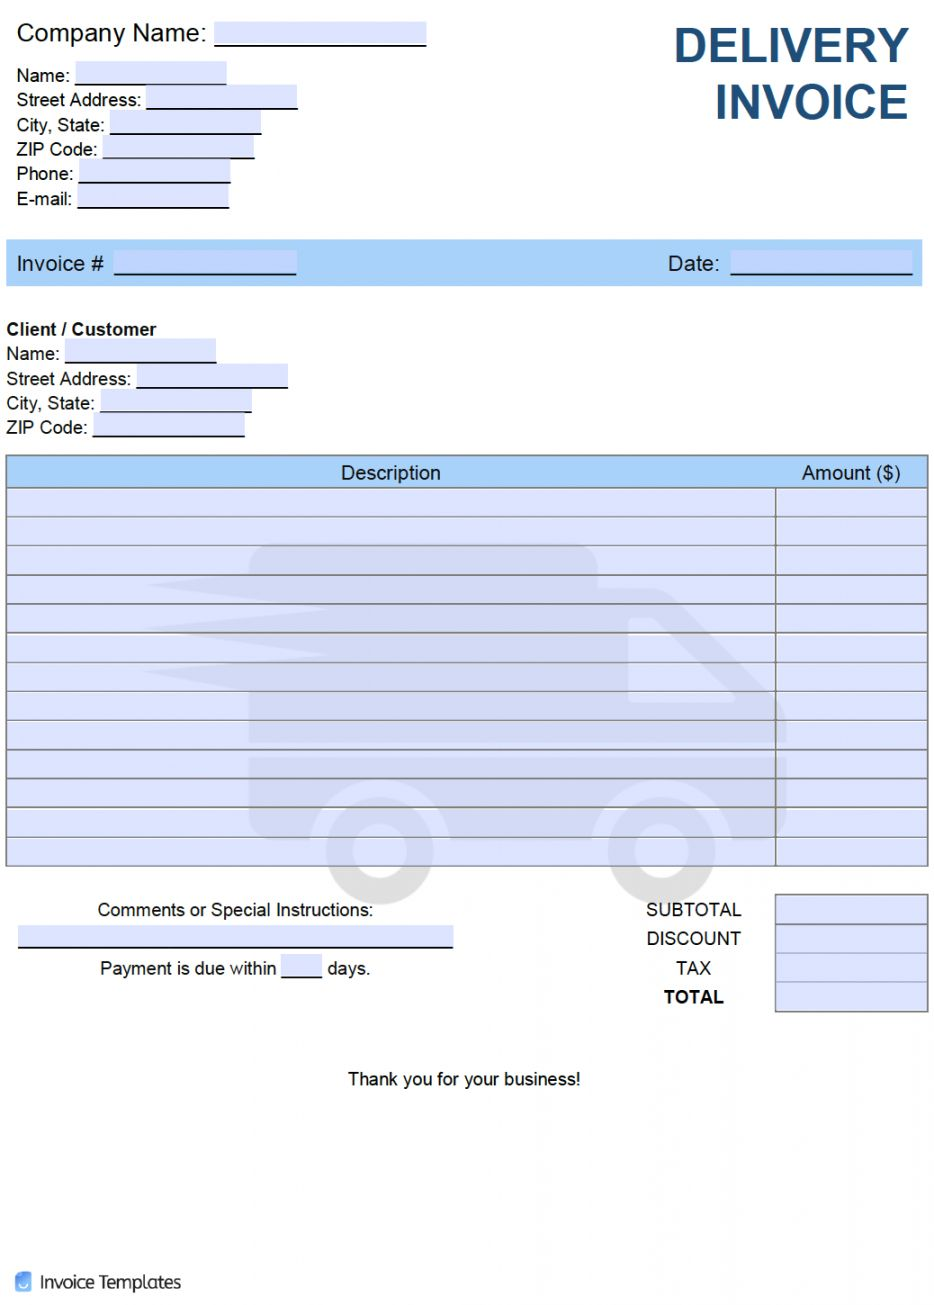 Browse Our Image Of Vet Receipt Template Invoice Template Receipt Template Templates